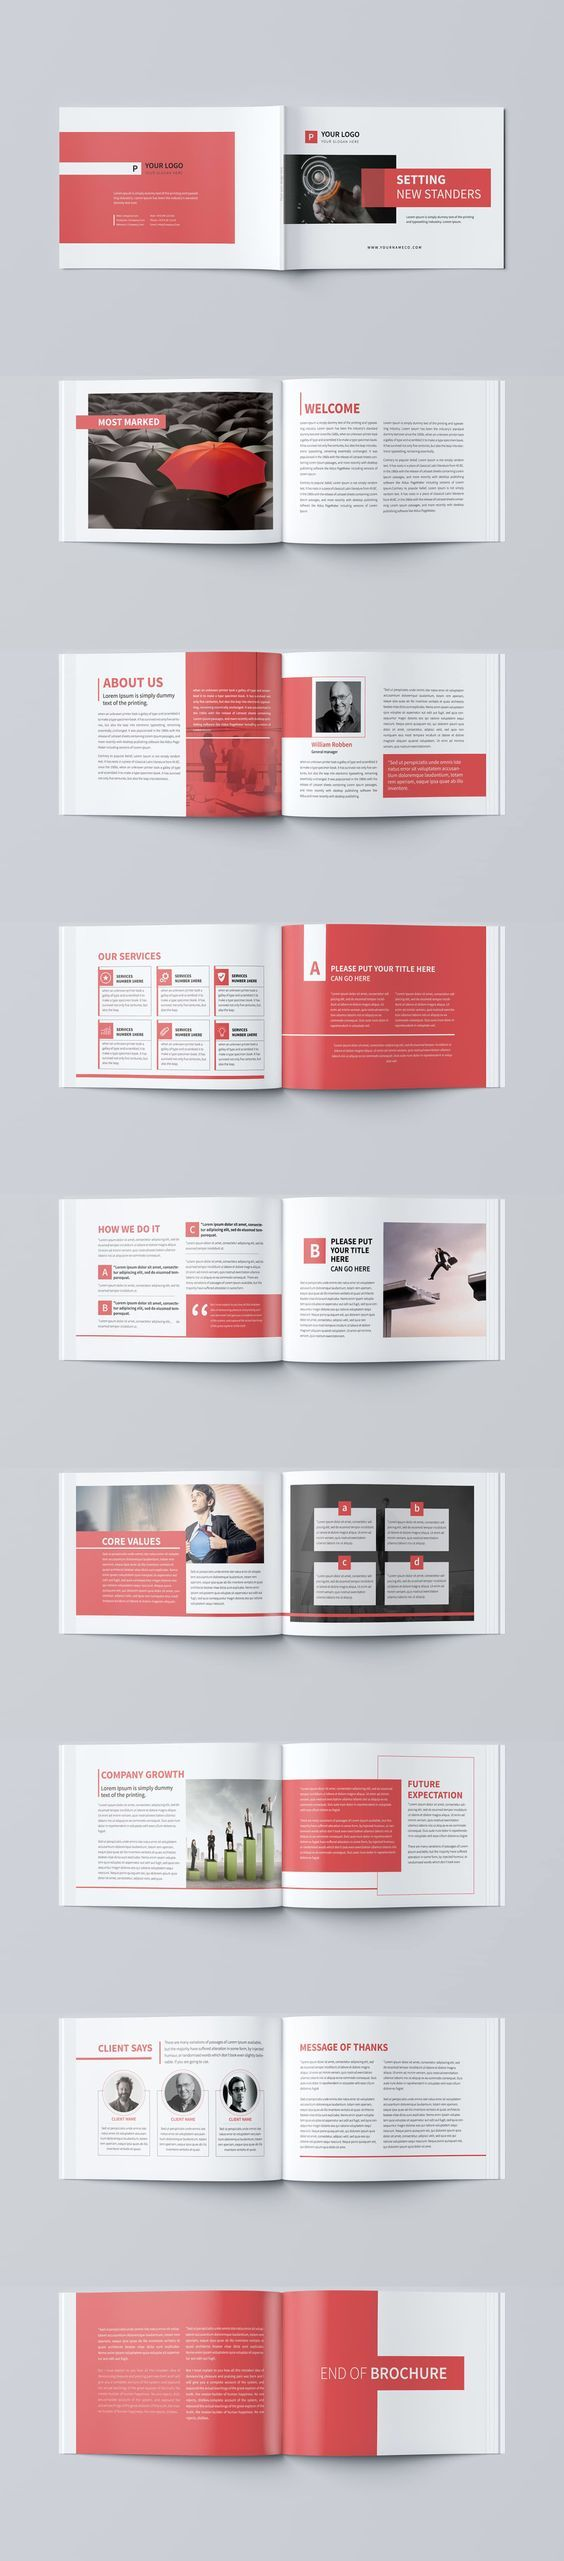 Advertising Brochure Template Minimal Business Brochure Template Psd  Advertising  Pinterest .